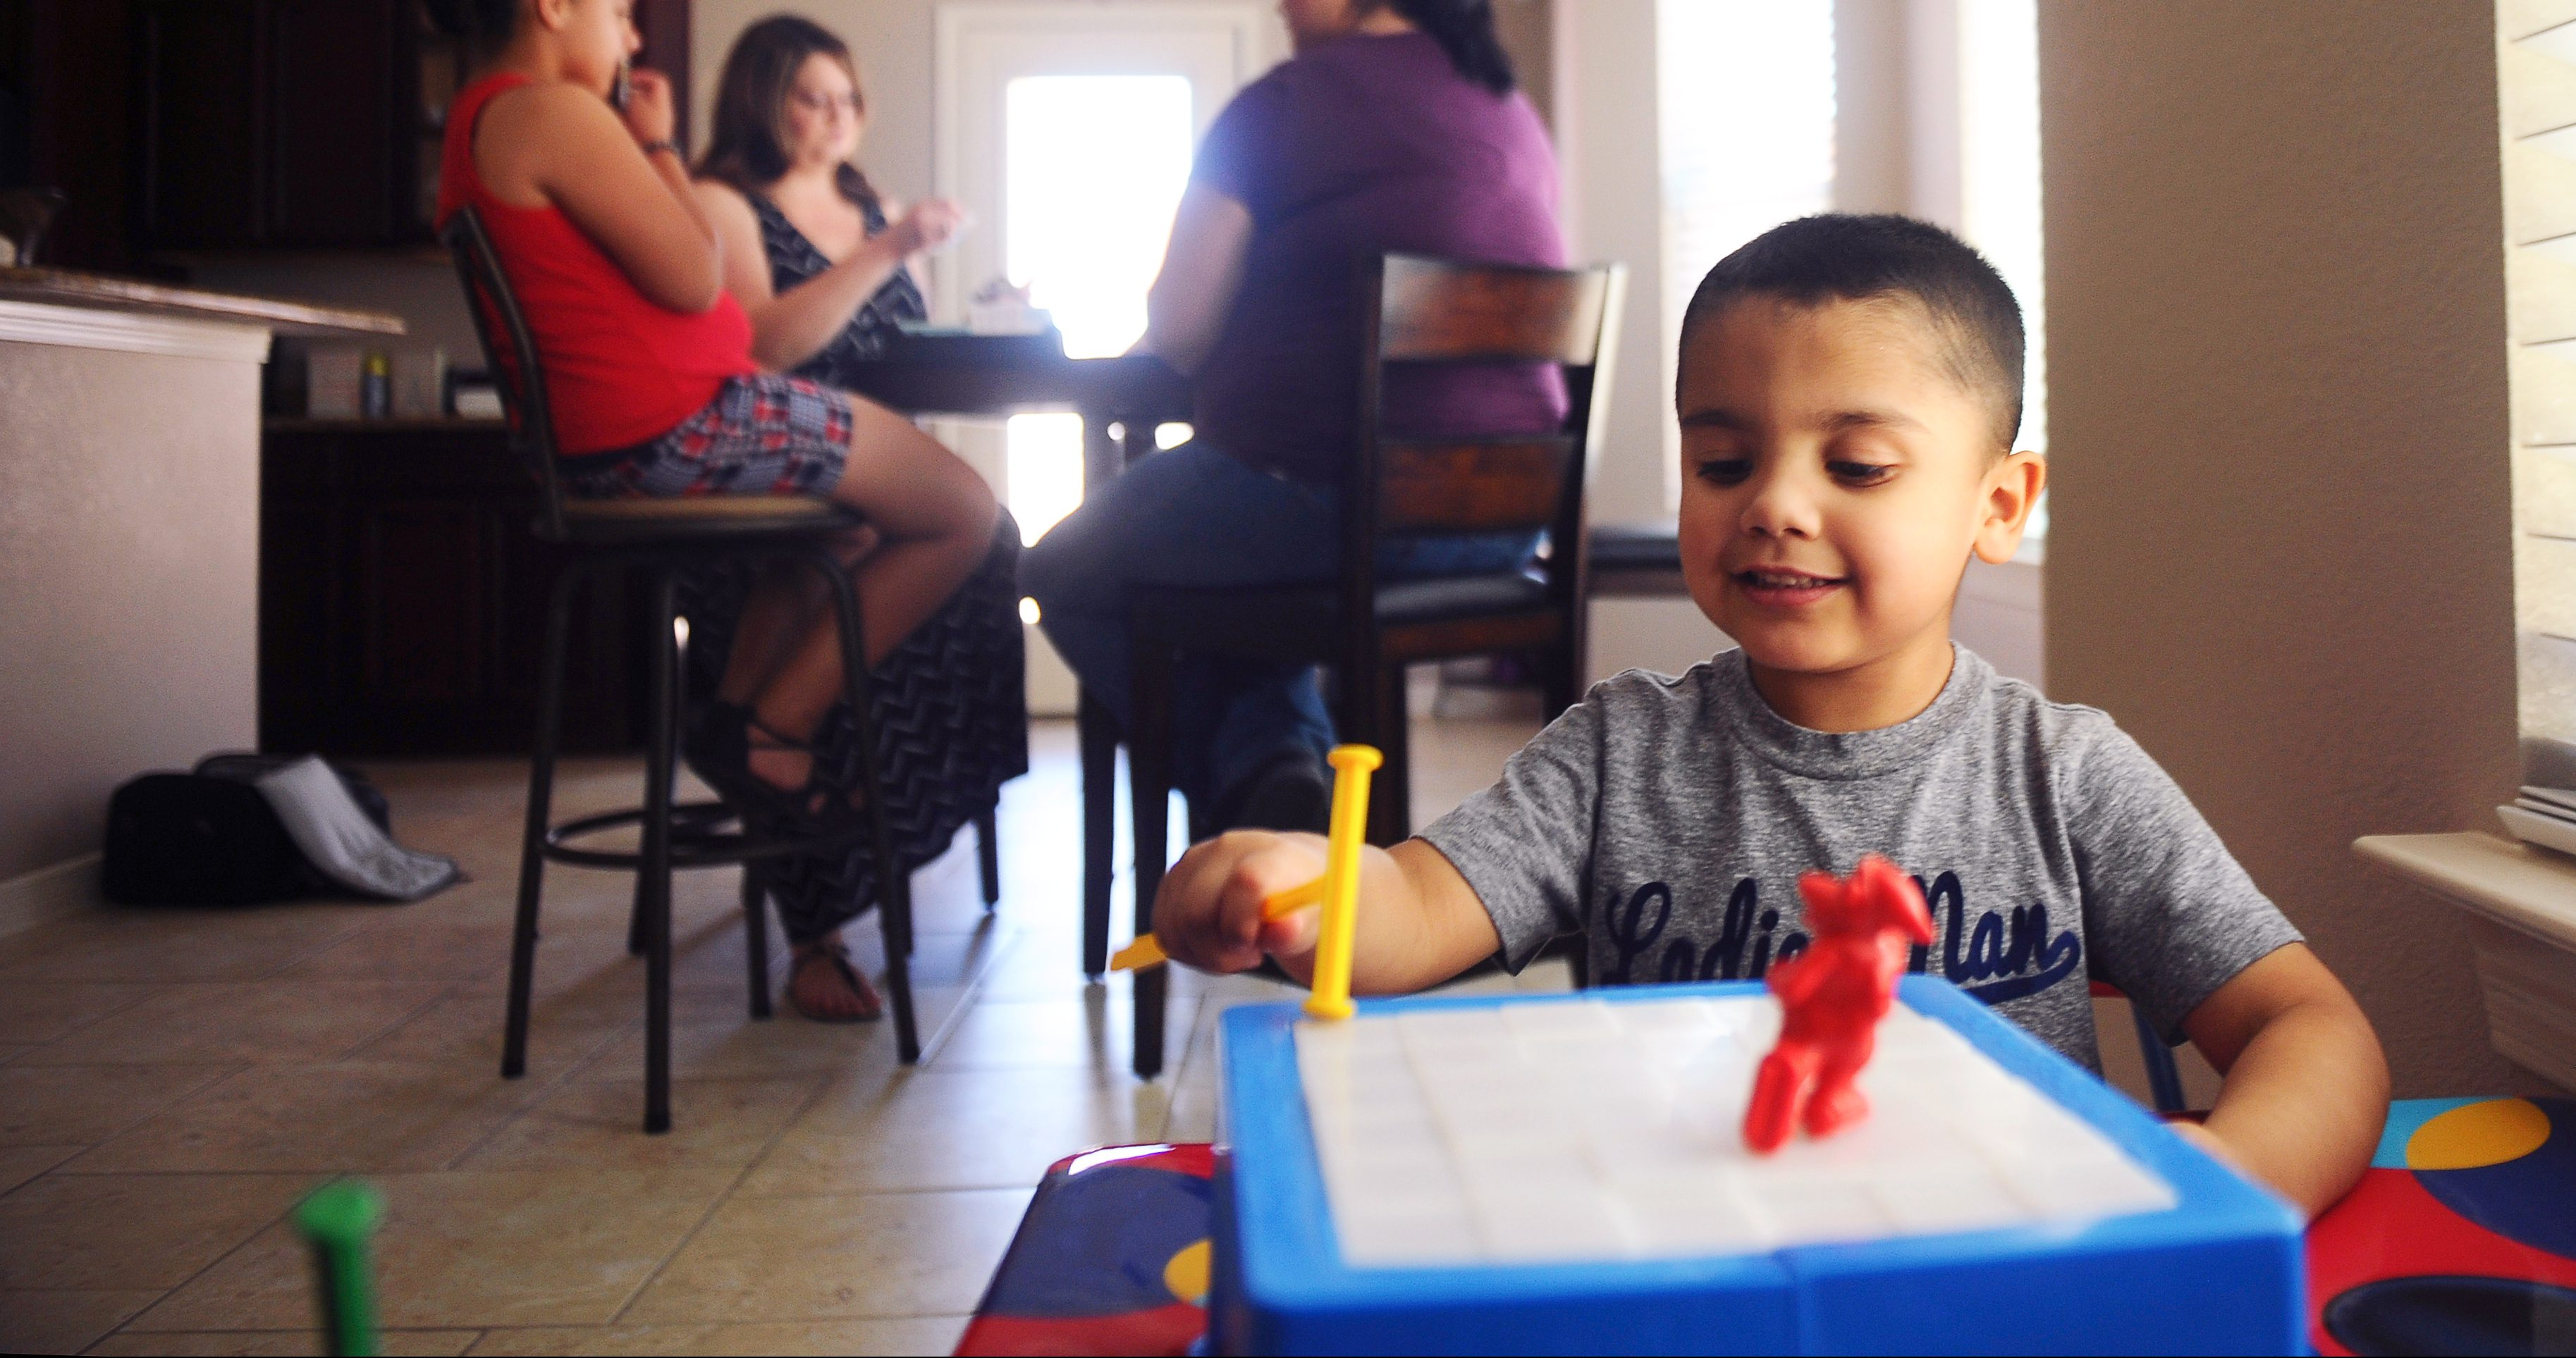 Kane plays with a toy at the home of his family in El Paso